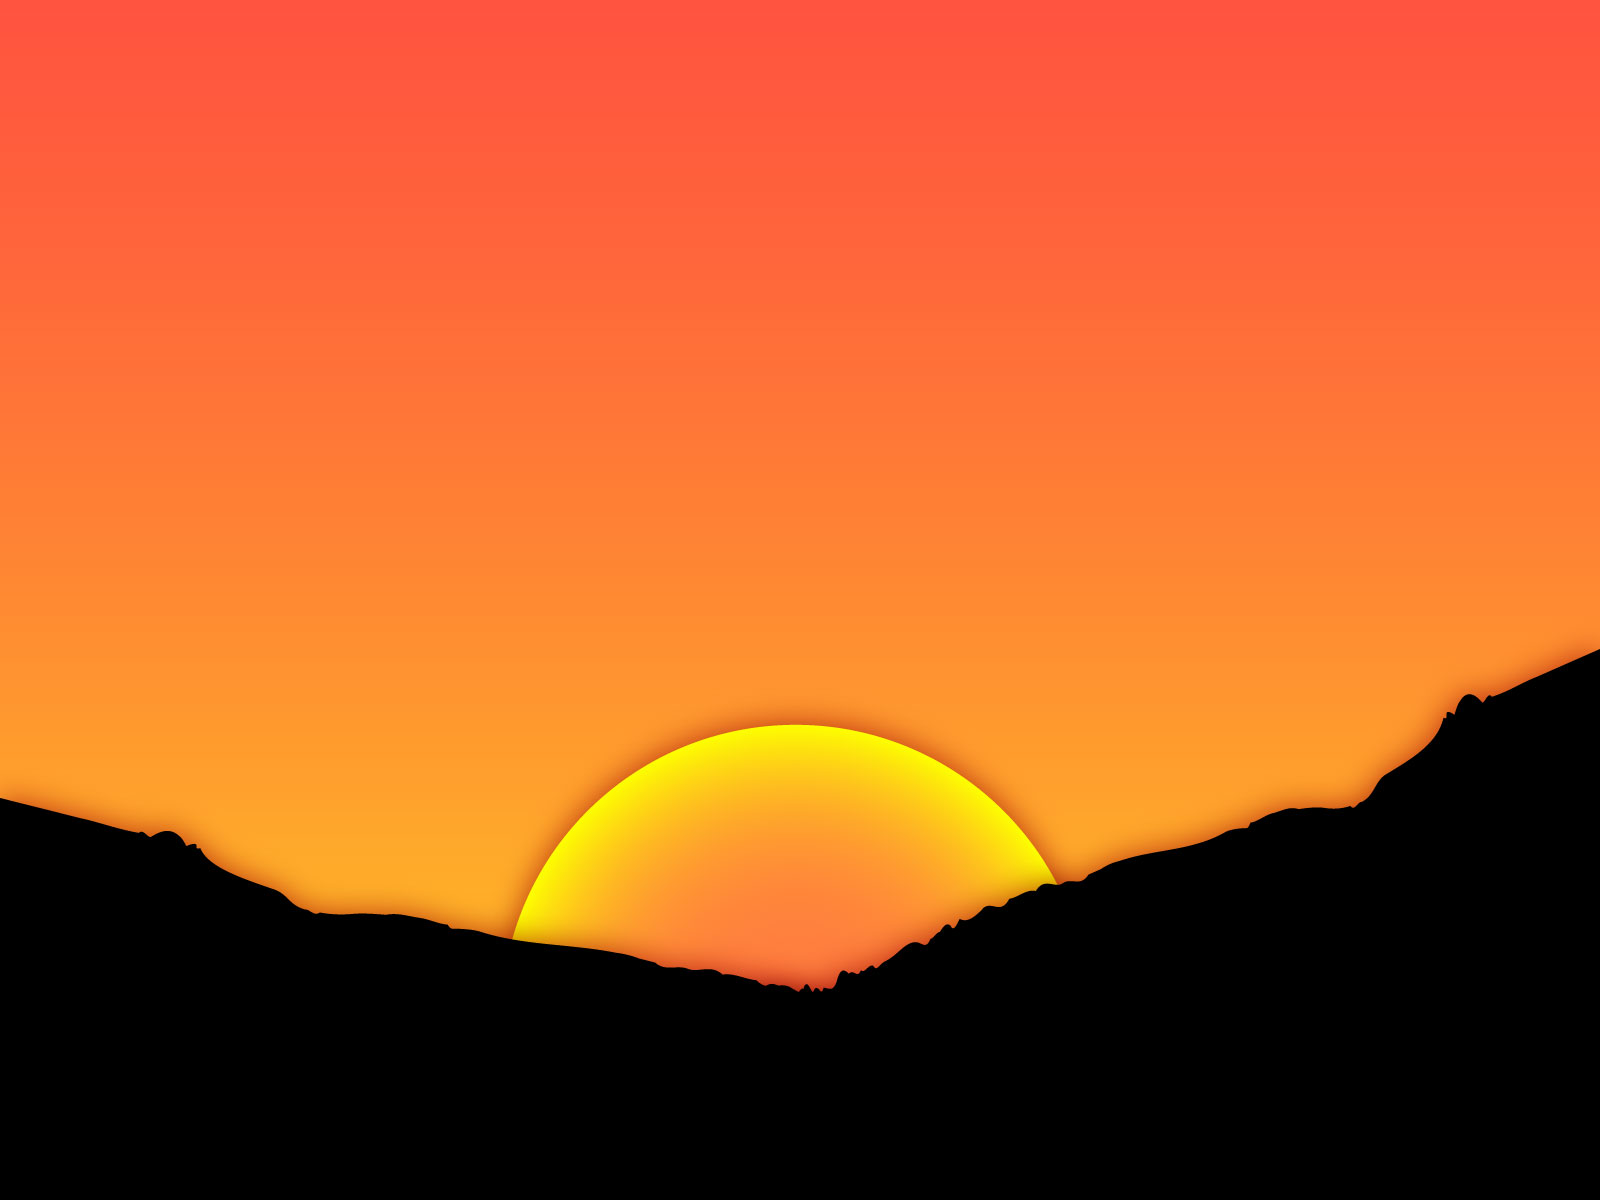 Free sunsets cliparts download. Sunset clipart